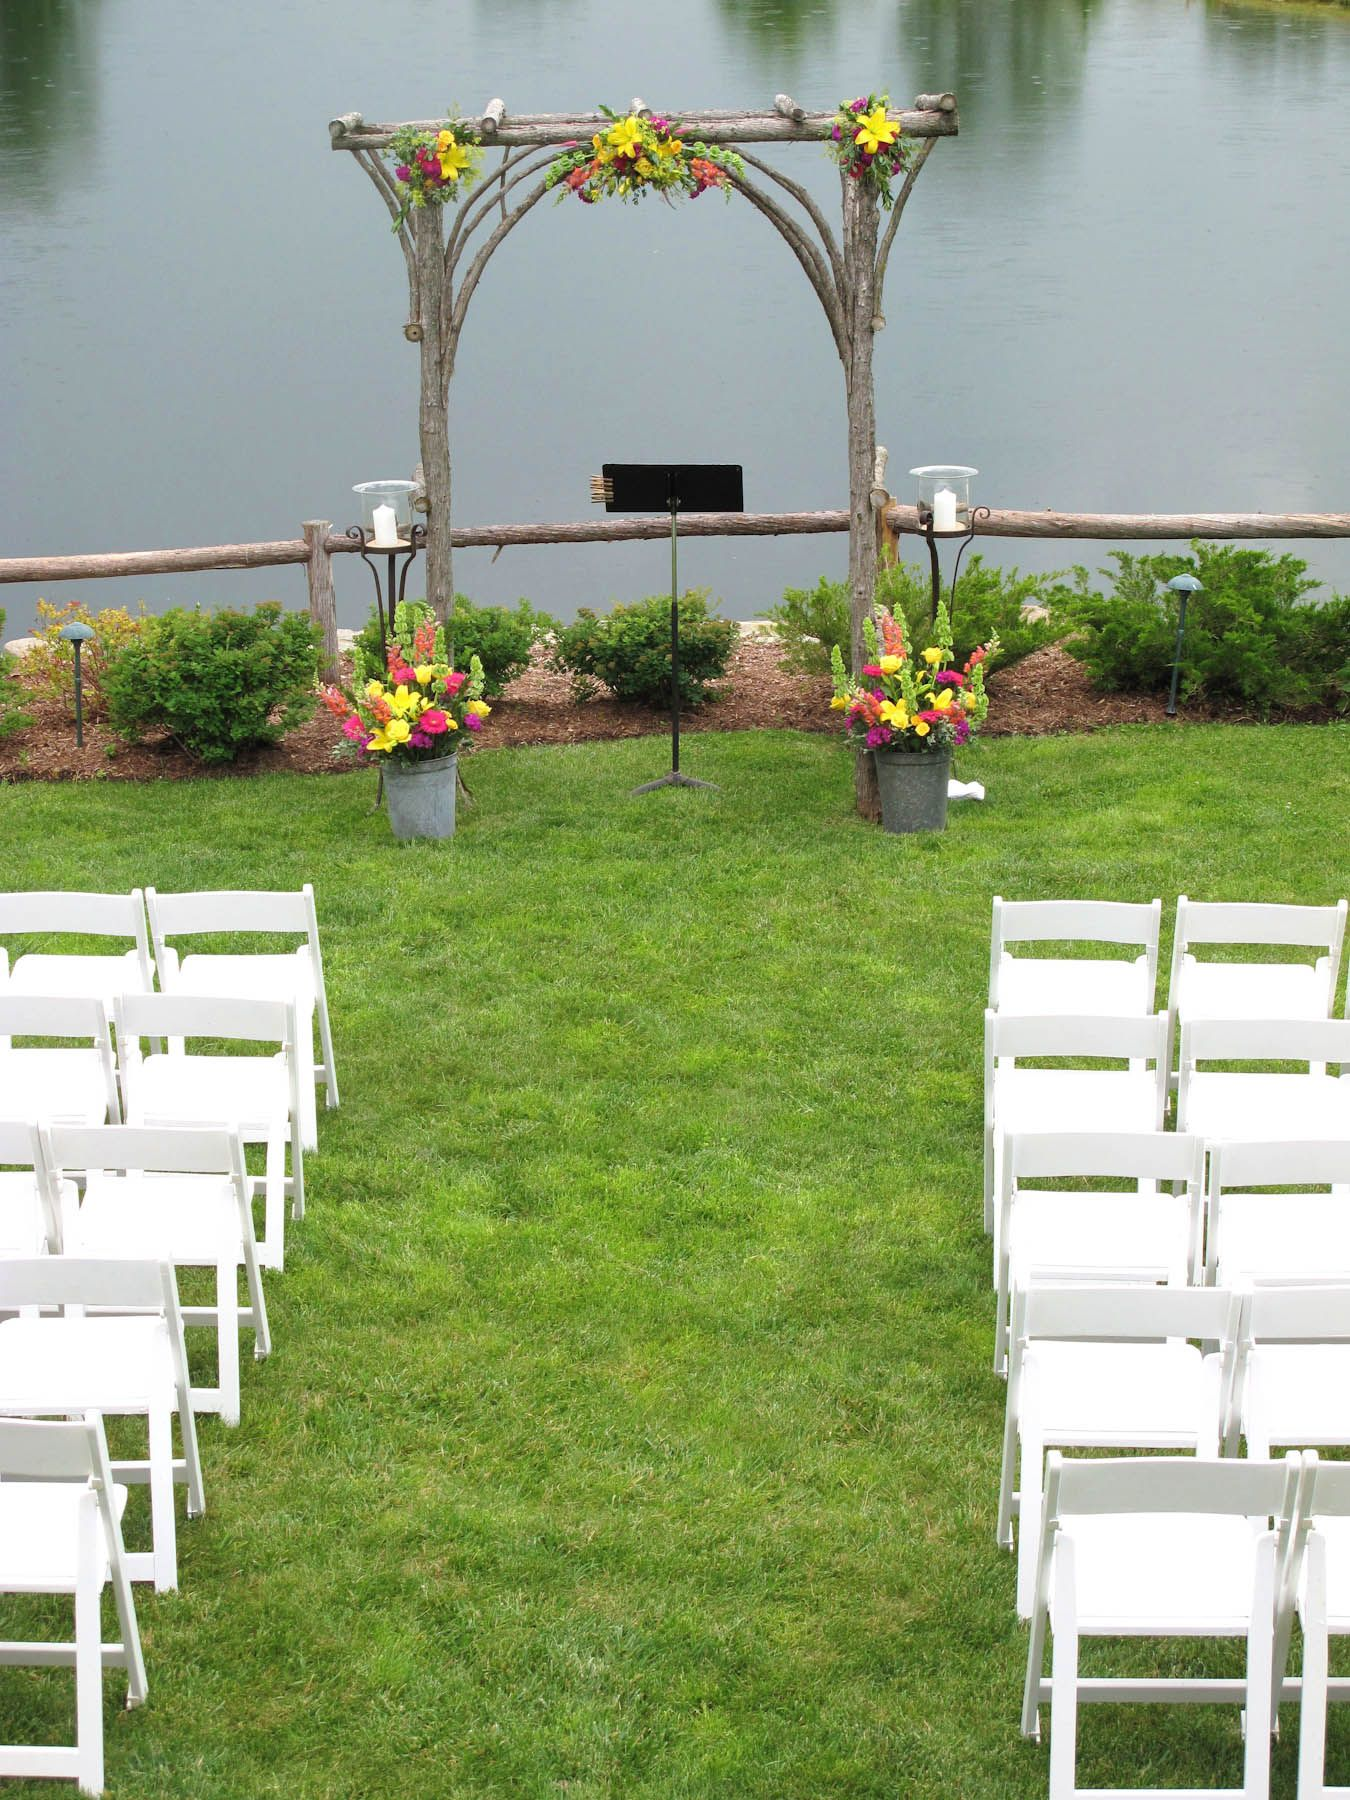 Ceremony I Prefer The Clean Look Of The Bunch At The Top Without Any Greenery Ceremony Ceremony Spaces Wedding Flowers